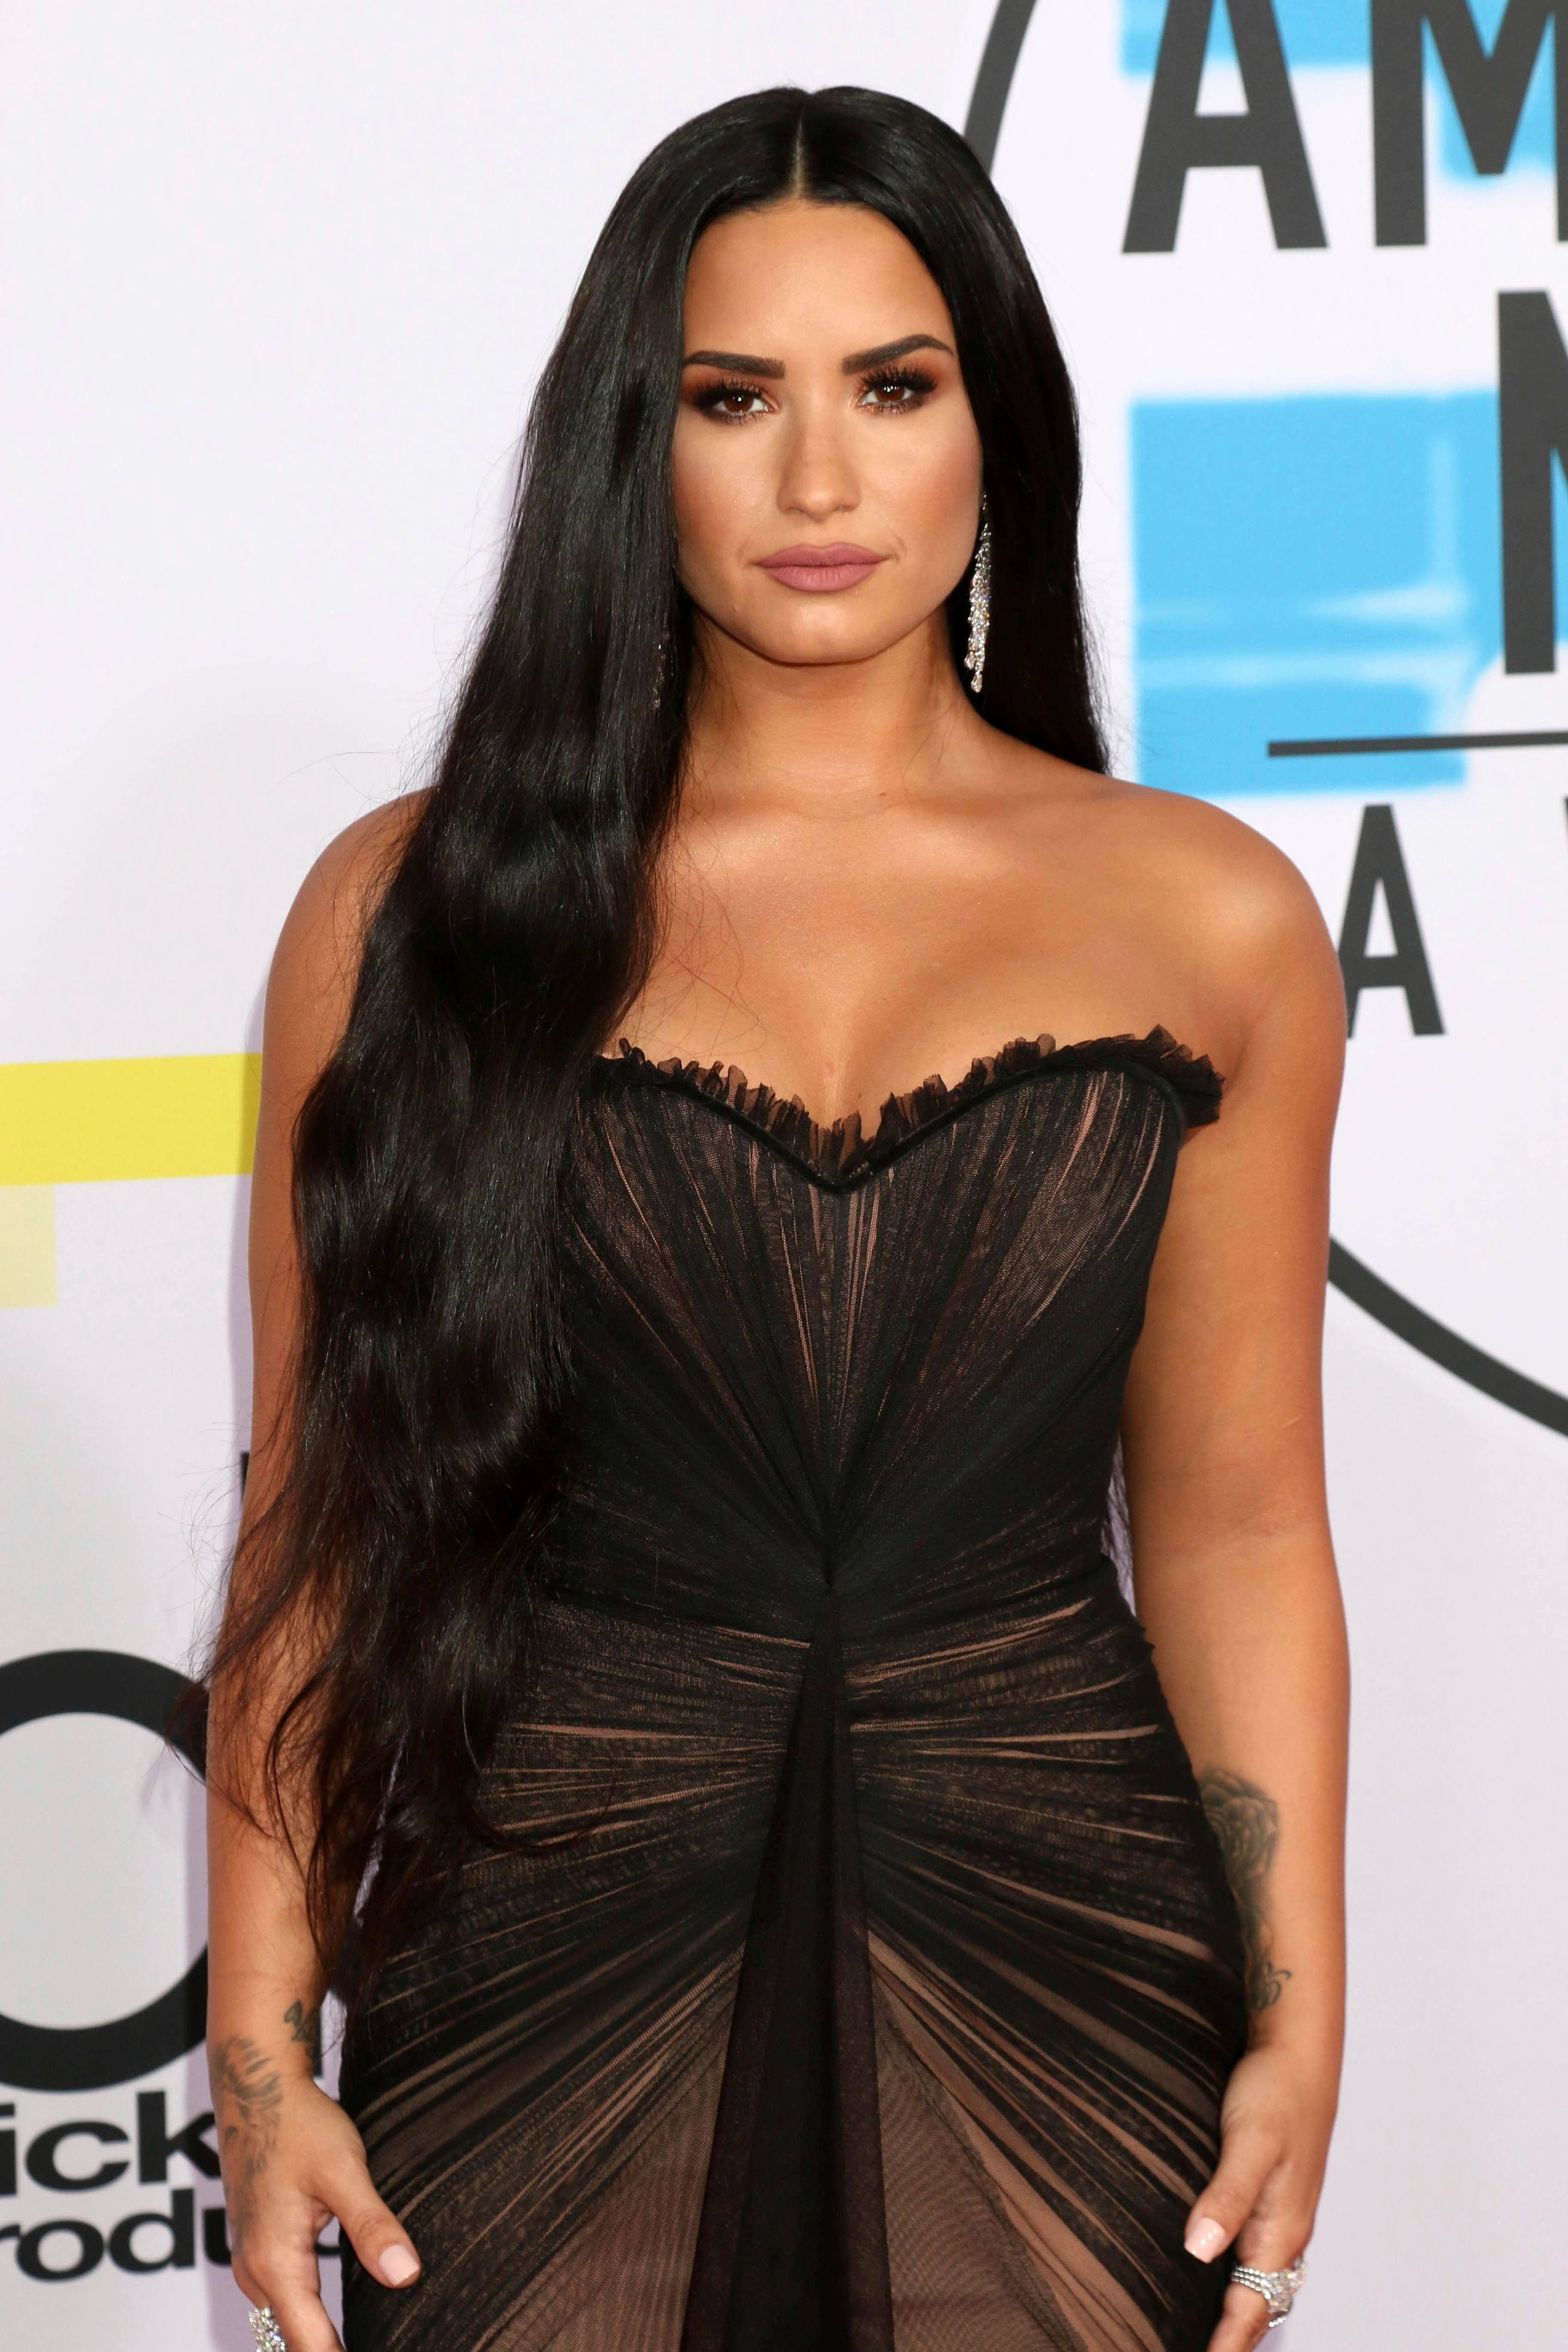 ***FILE PHOTO*** Demi Lovato Rushed To Hospital from Alleged Heroin Overdose LOS ANGELES, CA - NOVEMBER 19: Demi Lovato at the 2017 American Music Awards at Microsoft Theater on November 19, 2017 in Los Angeles, California. Credit: David Edwards/MediaPunch /IPX